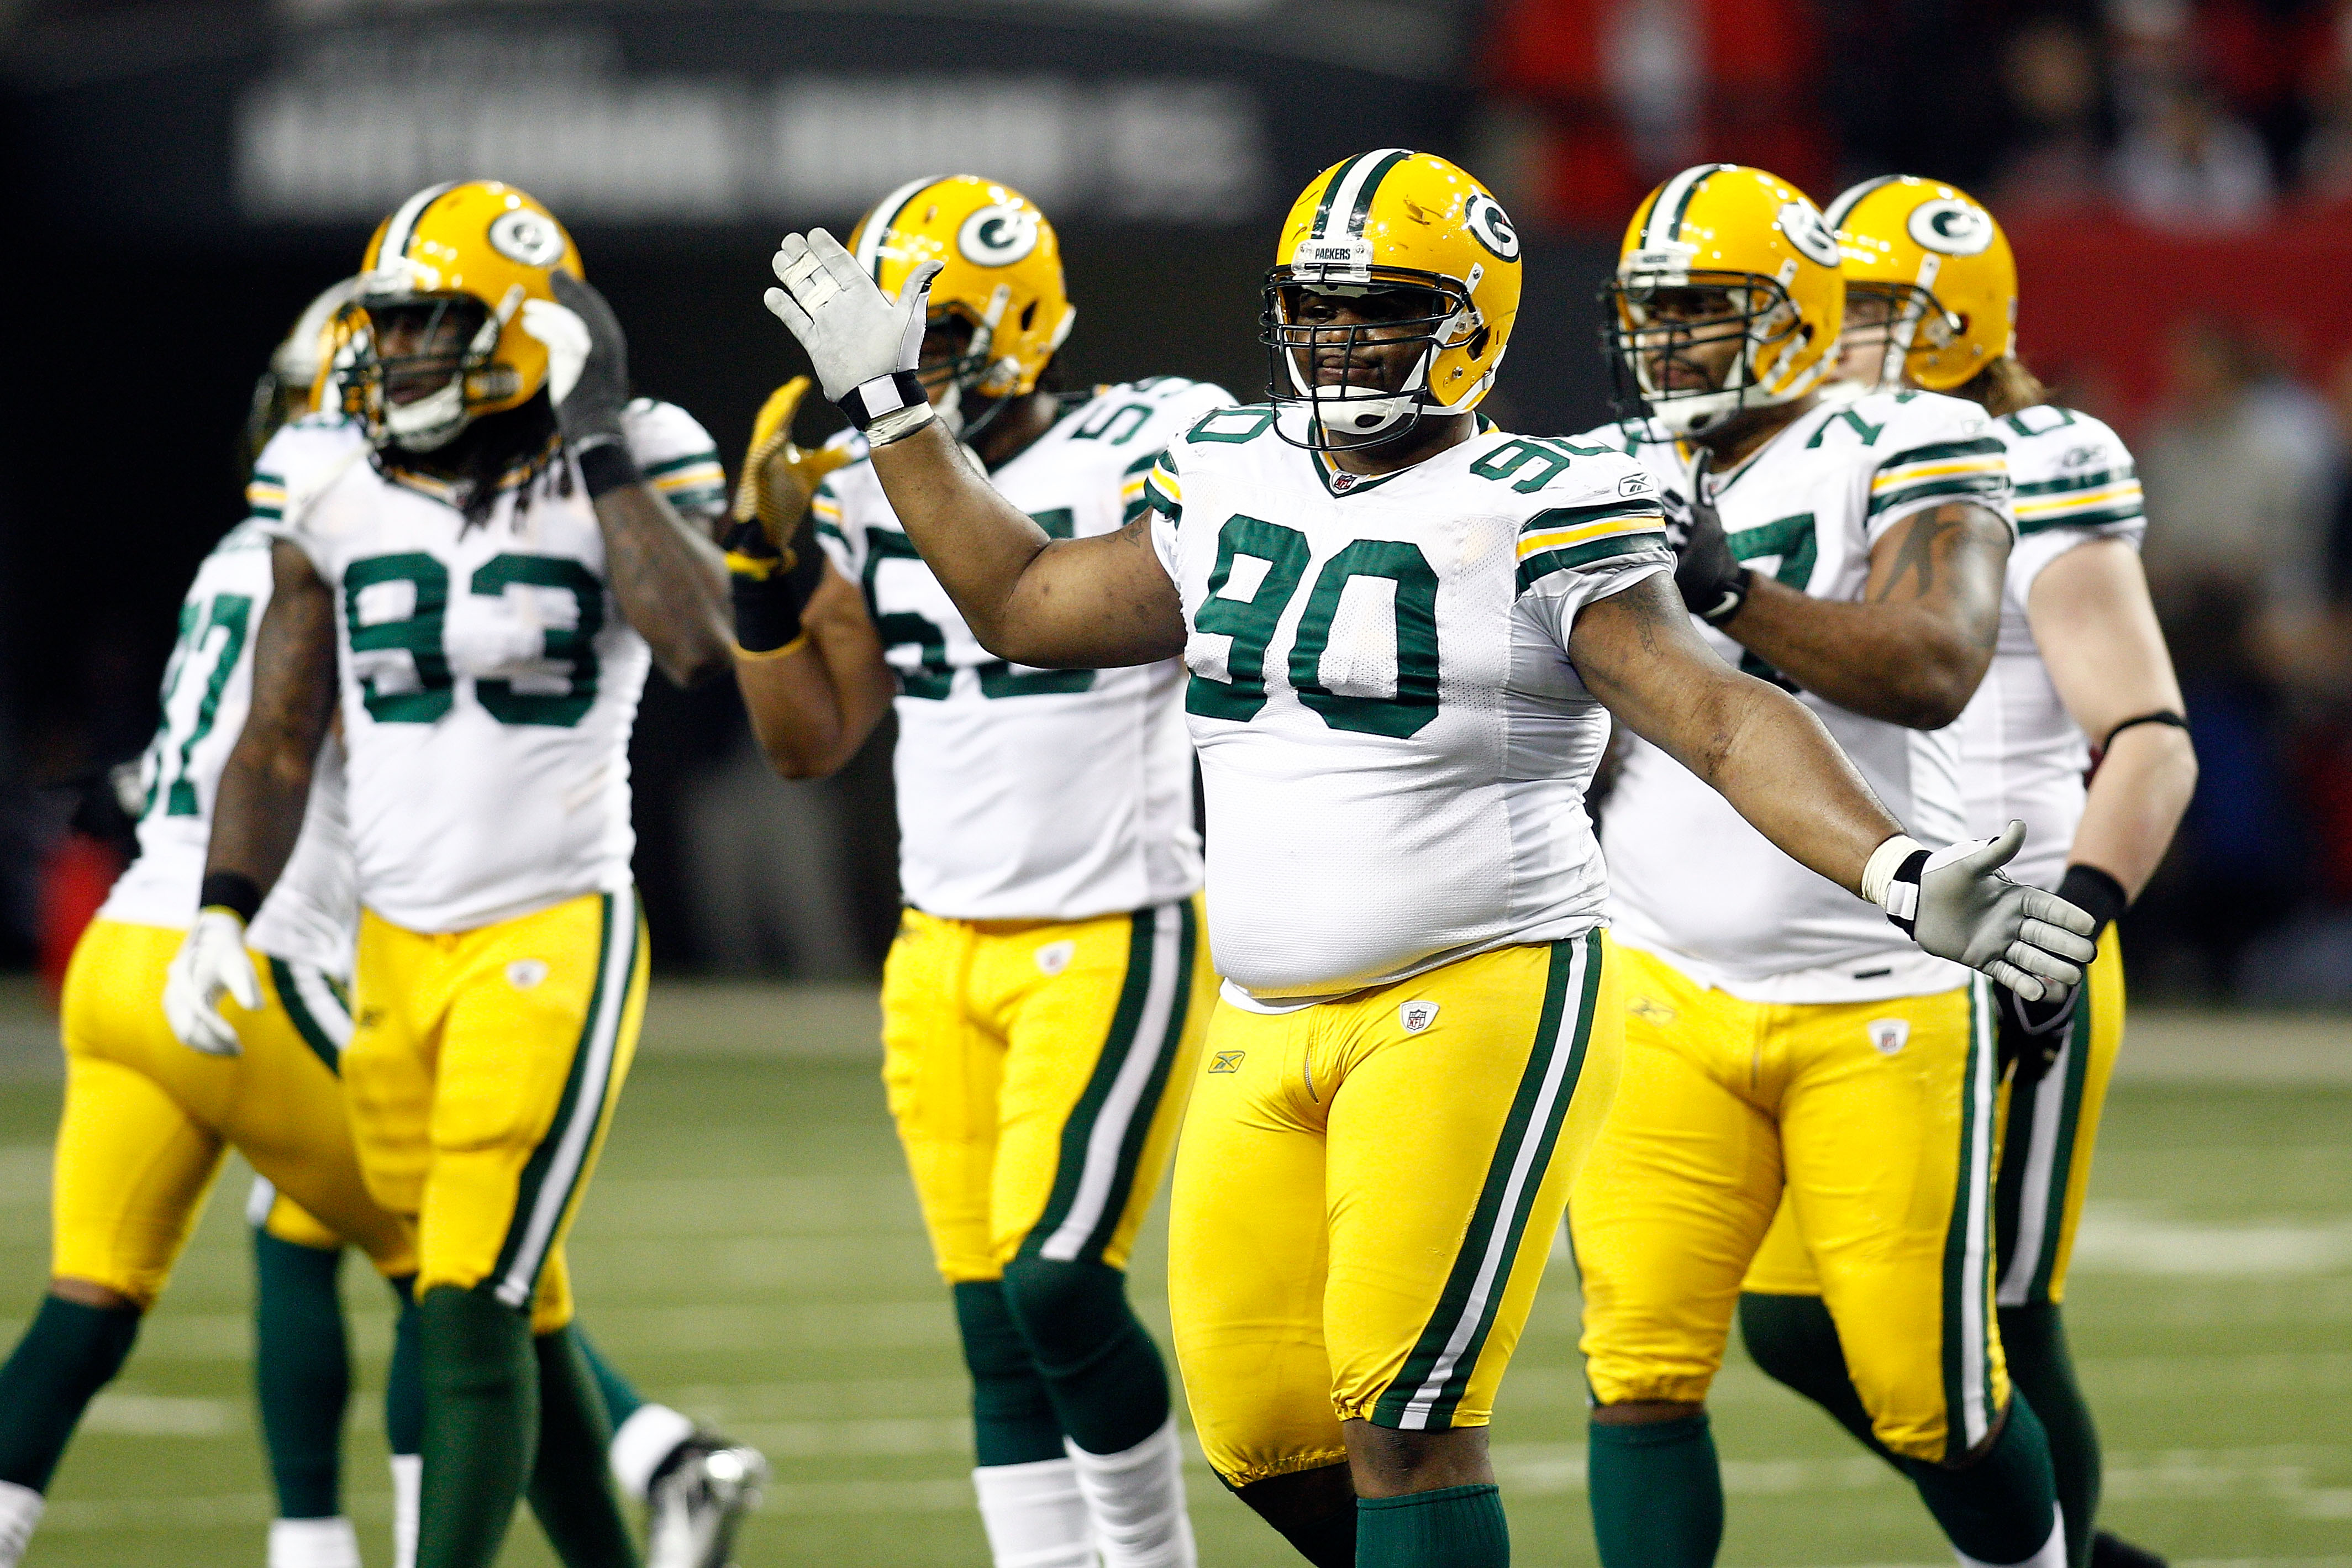 ATLANTA, GA - JANUARY 15:  B.J. Raji #90 of  the Green Bay Packers celebrates a defensive play against the Atlanta Falcons during their 2011 NFC divisional playoff game at Georgia Dome on January 15, 2011 in Atlanta, Georgia.  (Photo by Chris Graythen/Get